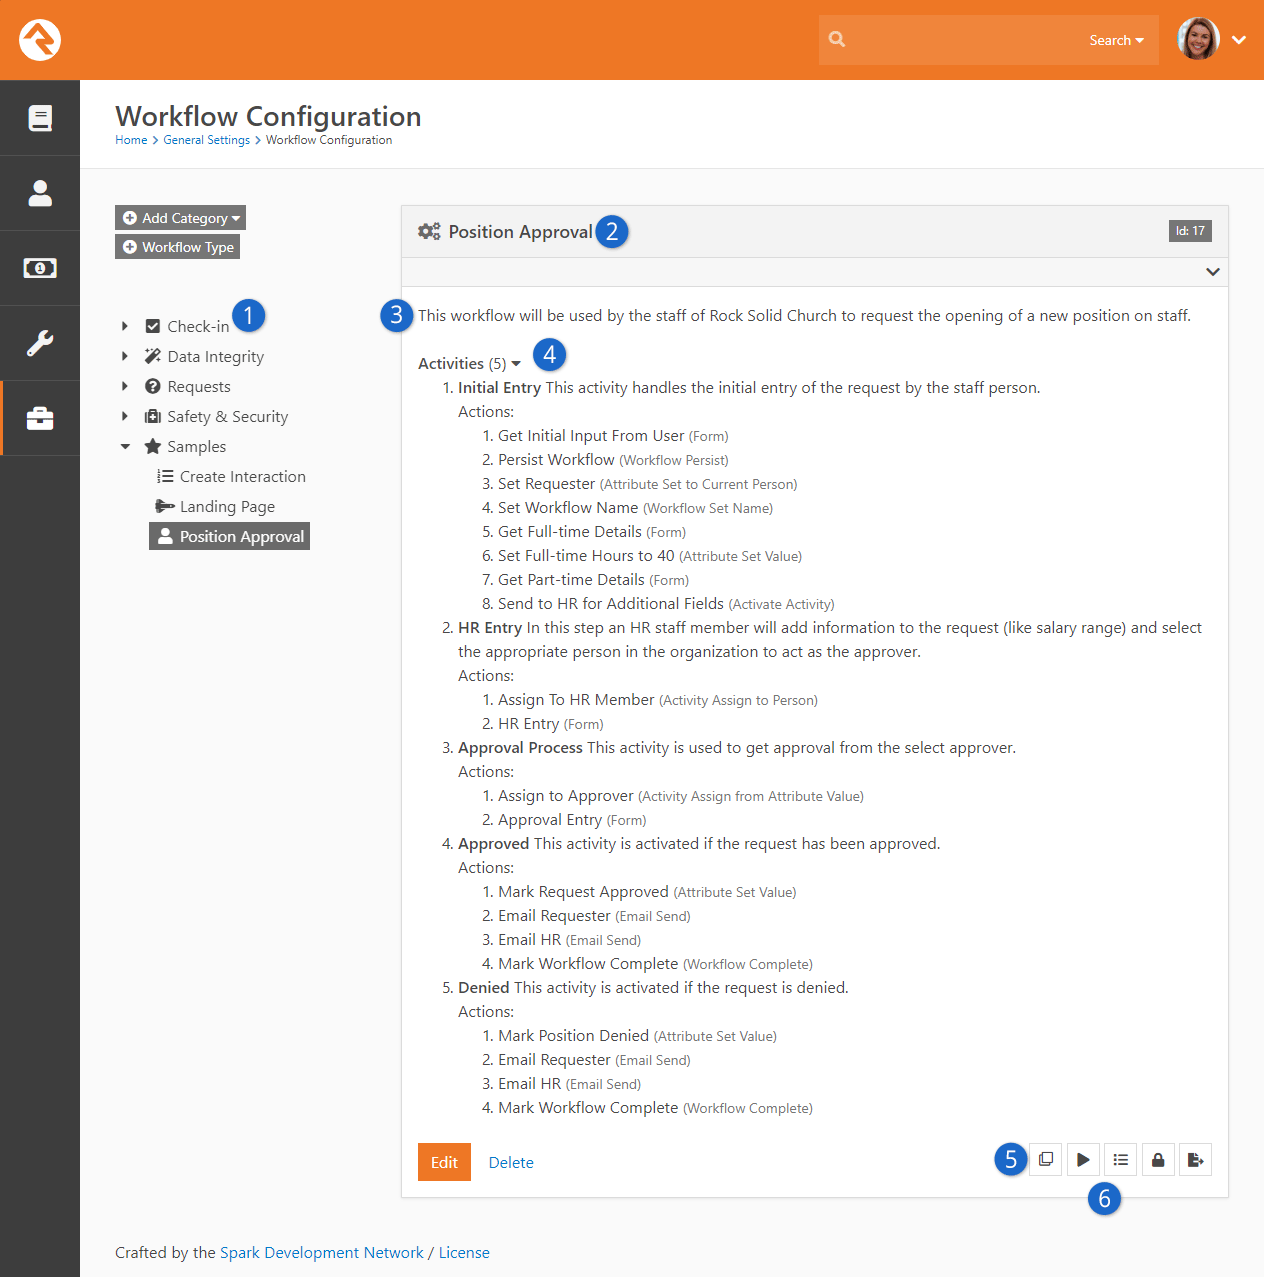 Workflow Type View